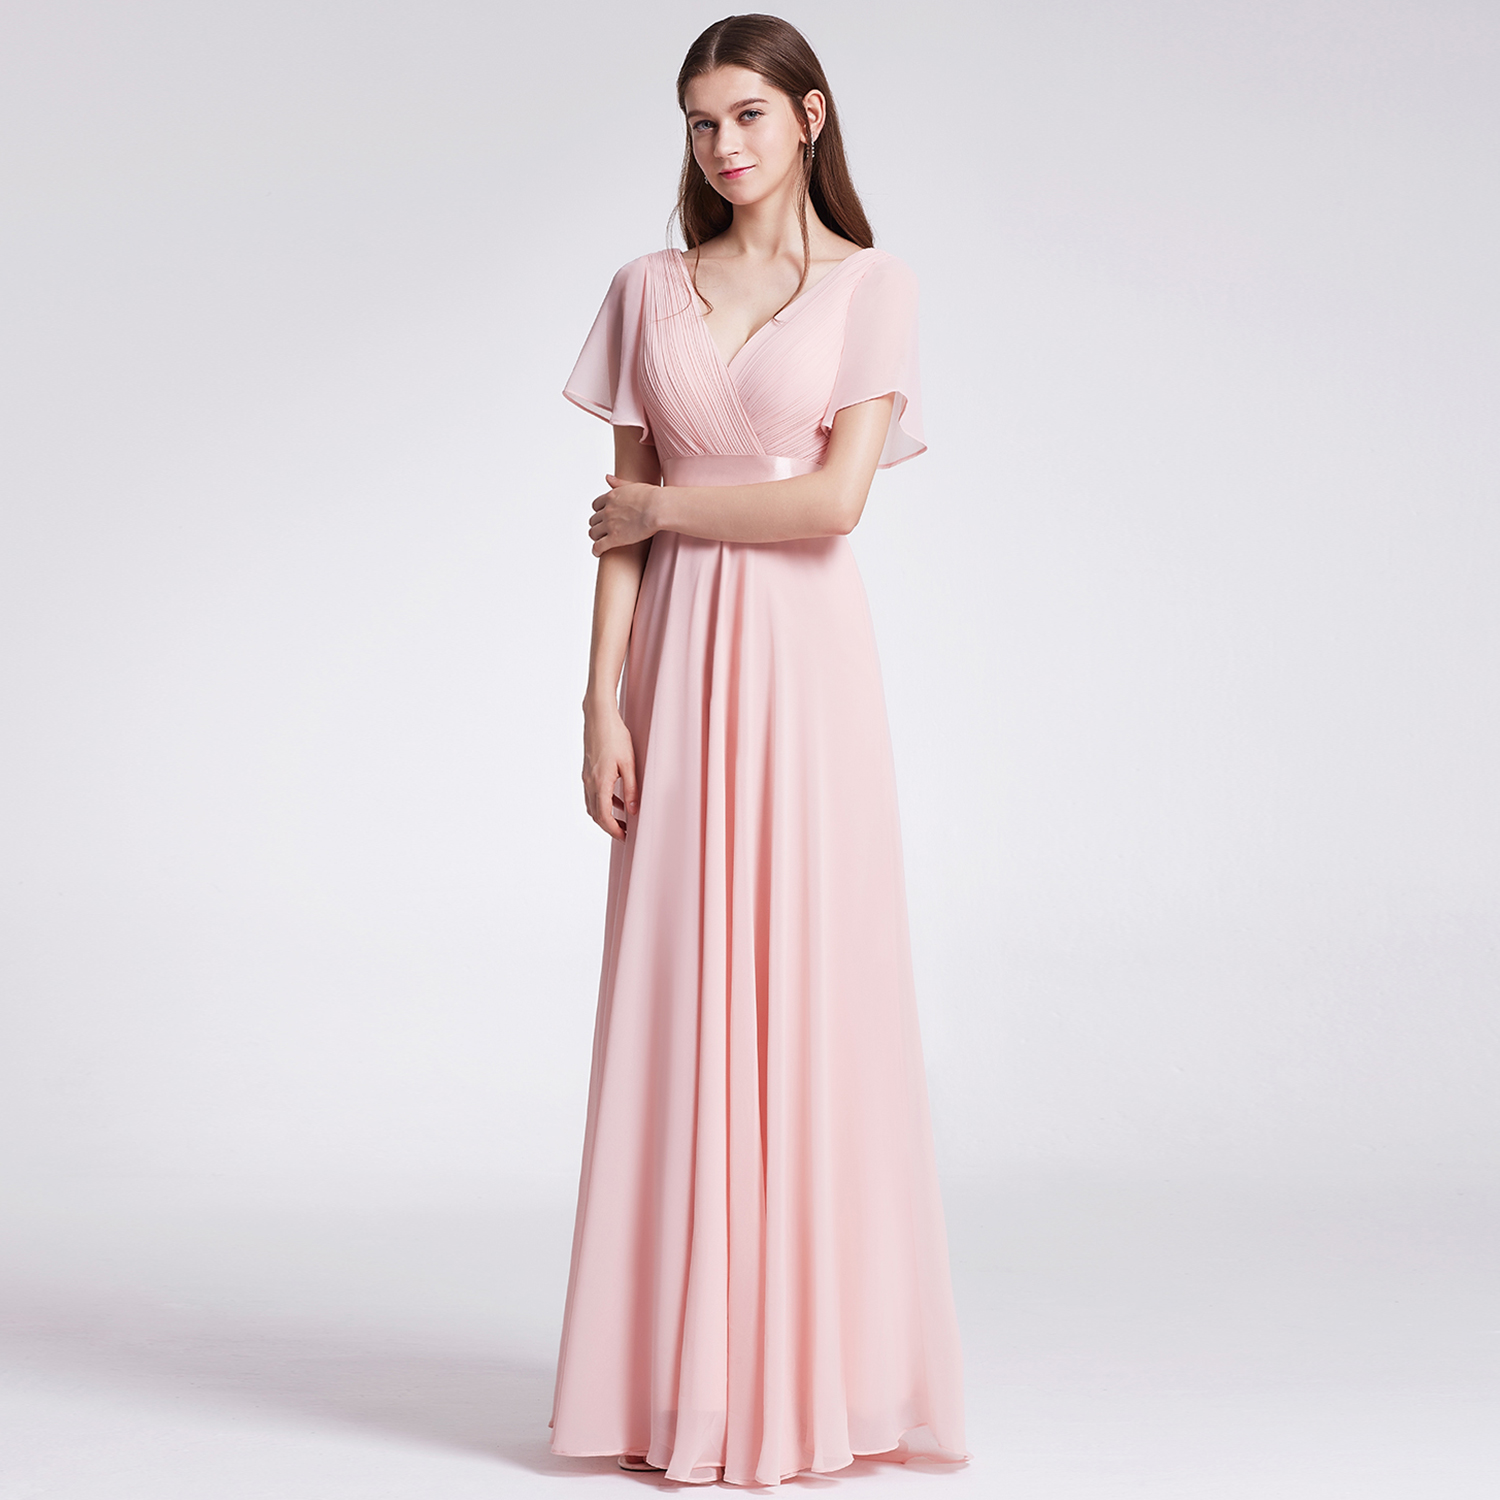 Women maxi long bridesmaid dress formal evening cocktail party picture 13 of 19 ombrellifo Images